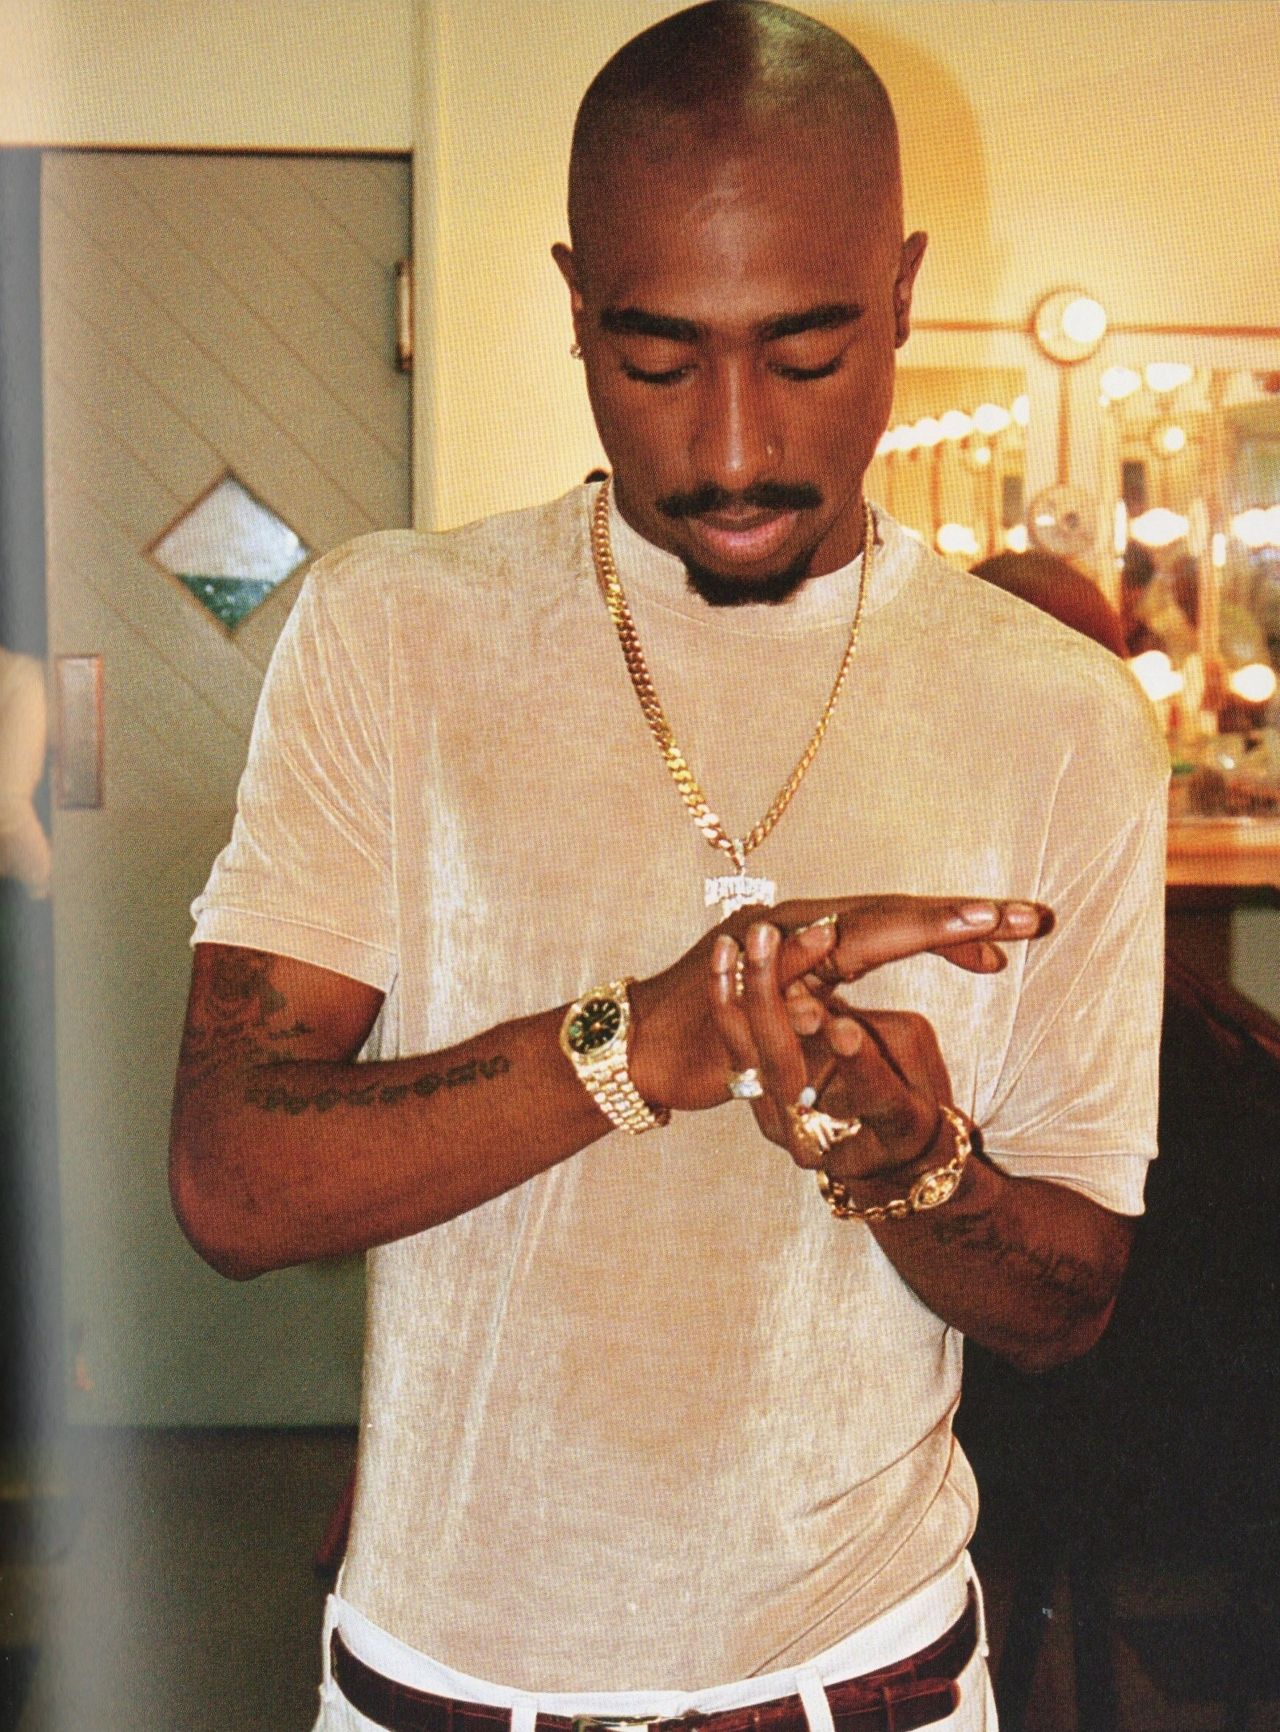 An introduction for a tupac shakur essay on his inpiration?